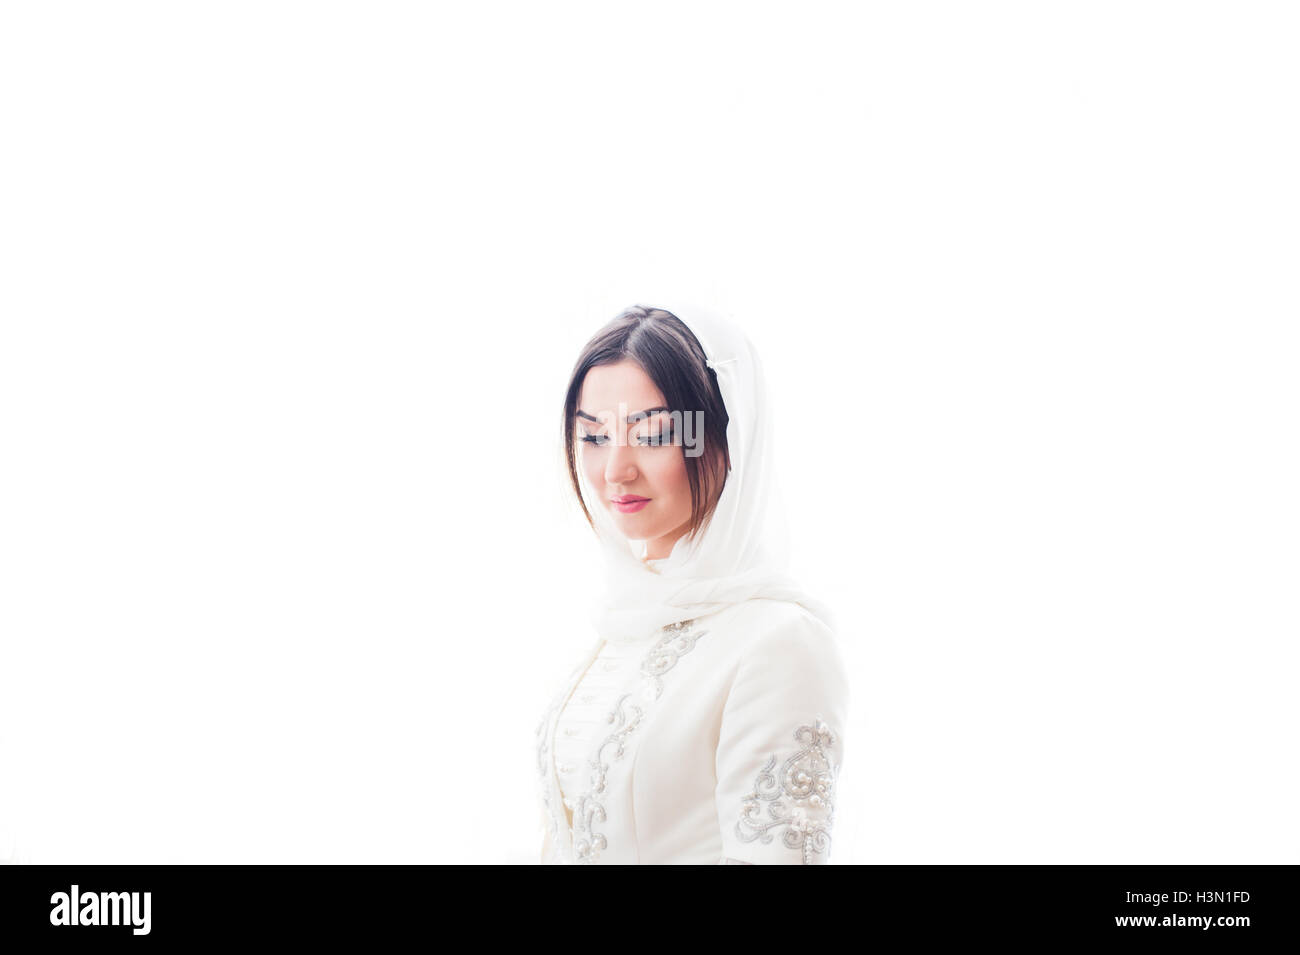 muslim girl in a white wedding hijab closed her eyes - Stock Image